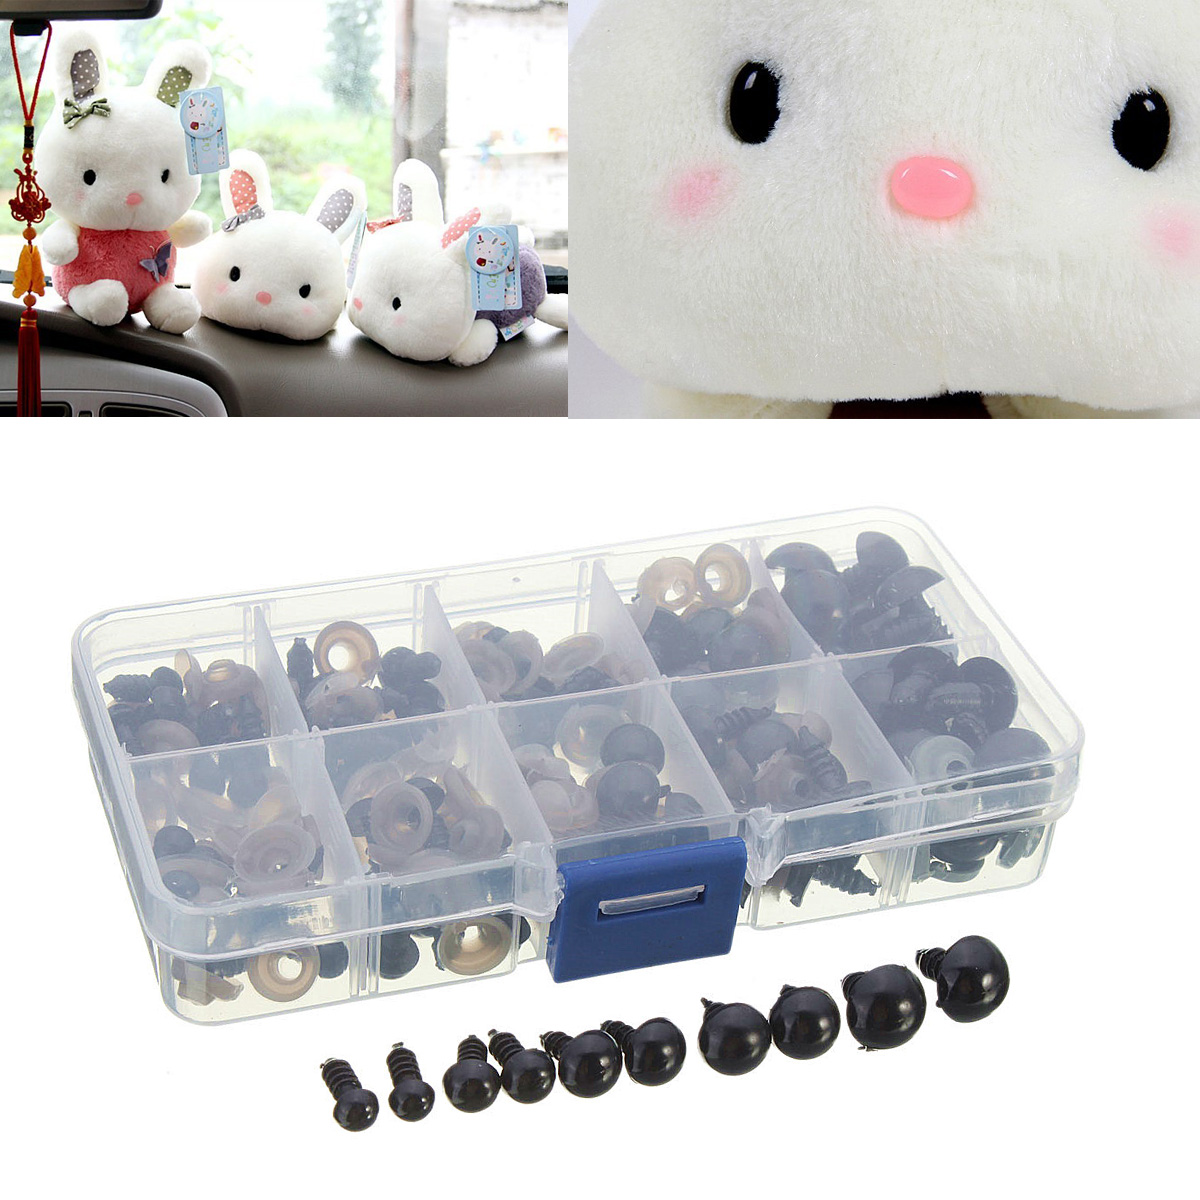 Puppet Plush Animal Making Teddy Bear 6mm-12mm Solid Black Eyes with Washers,Plastic Safety Eyes,Craft Doll Eyes,for Doll 100pcs,with Case